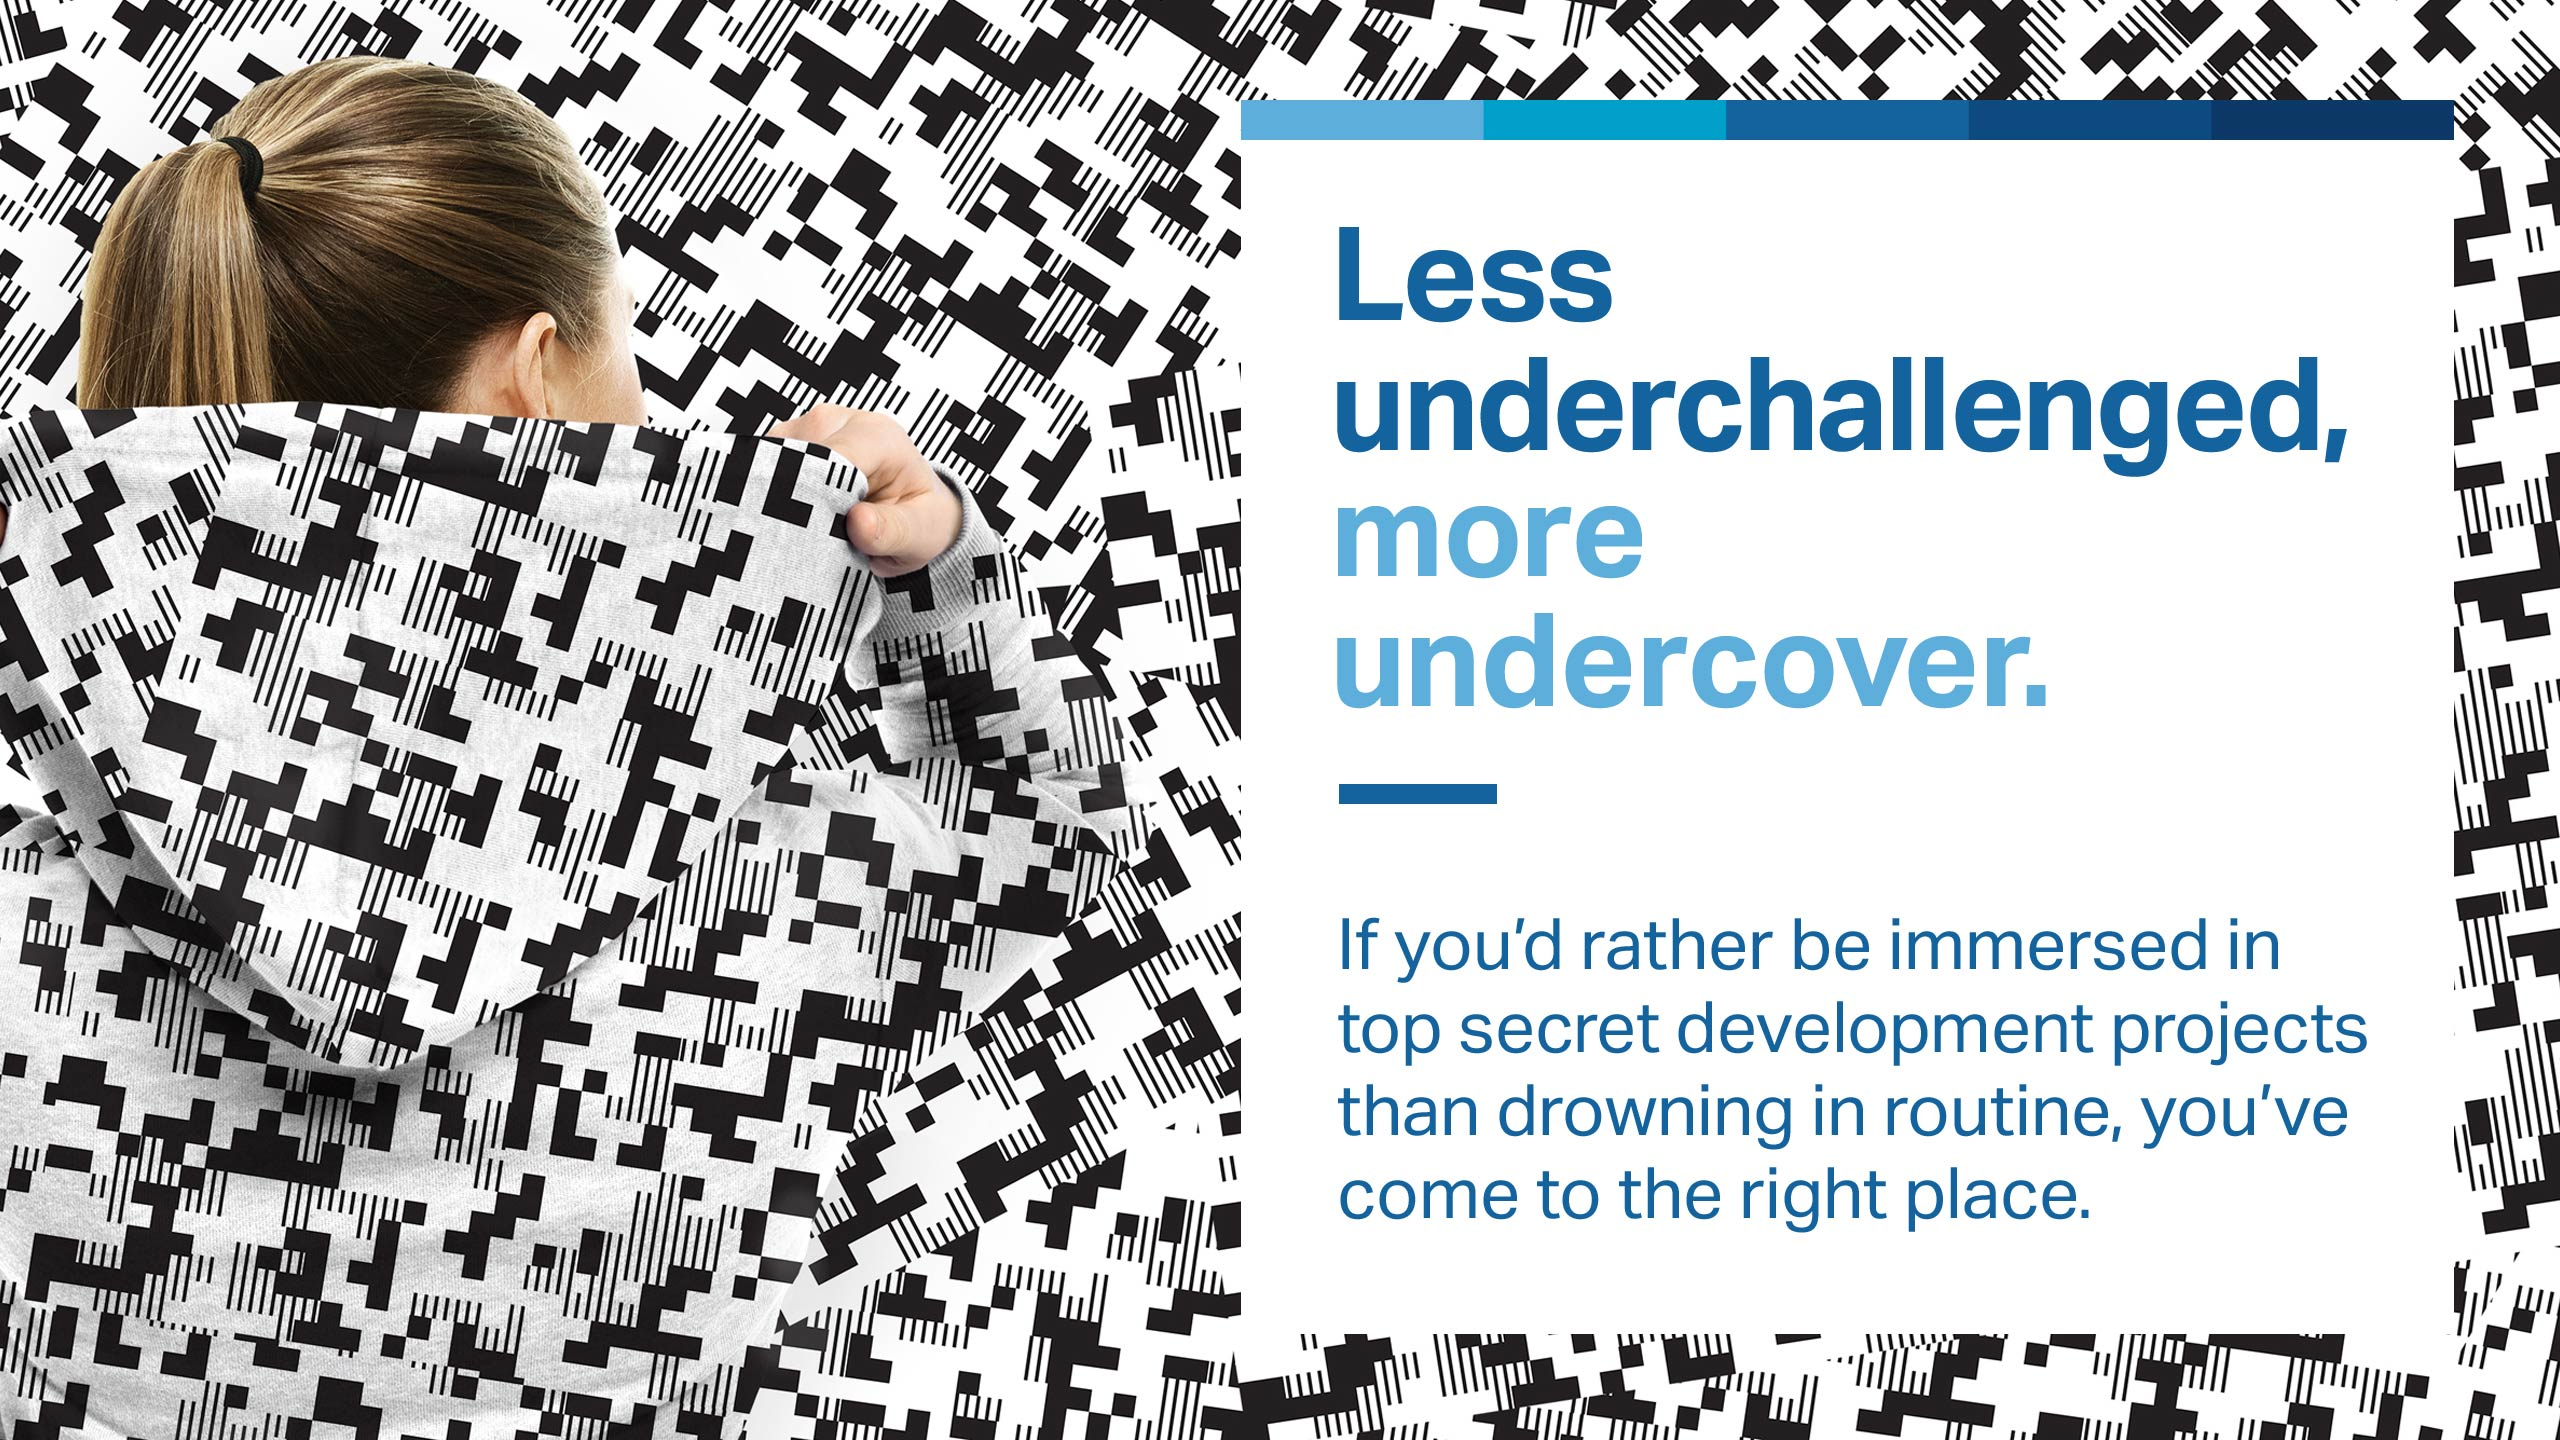 employer campaign, less underchallenged, more undercover